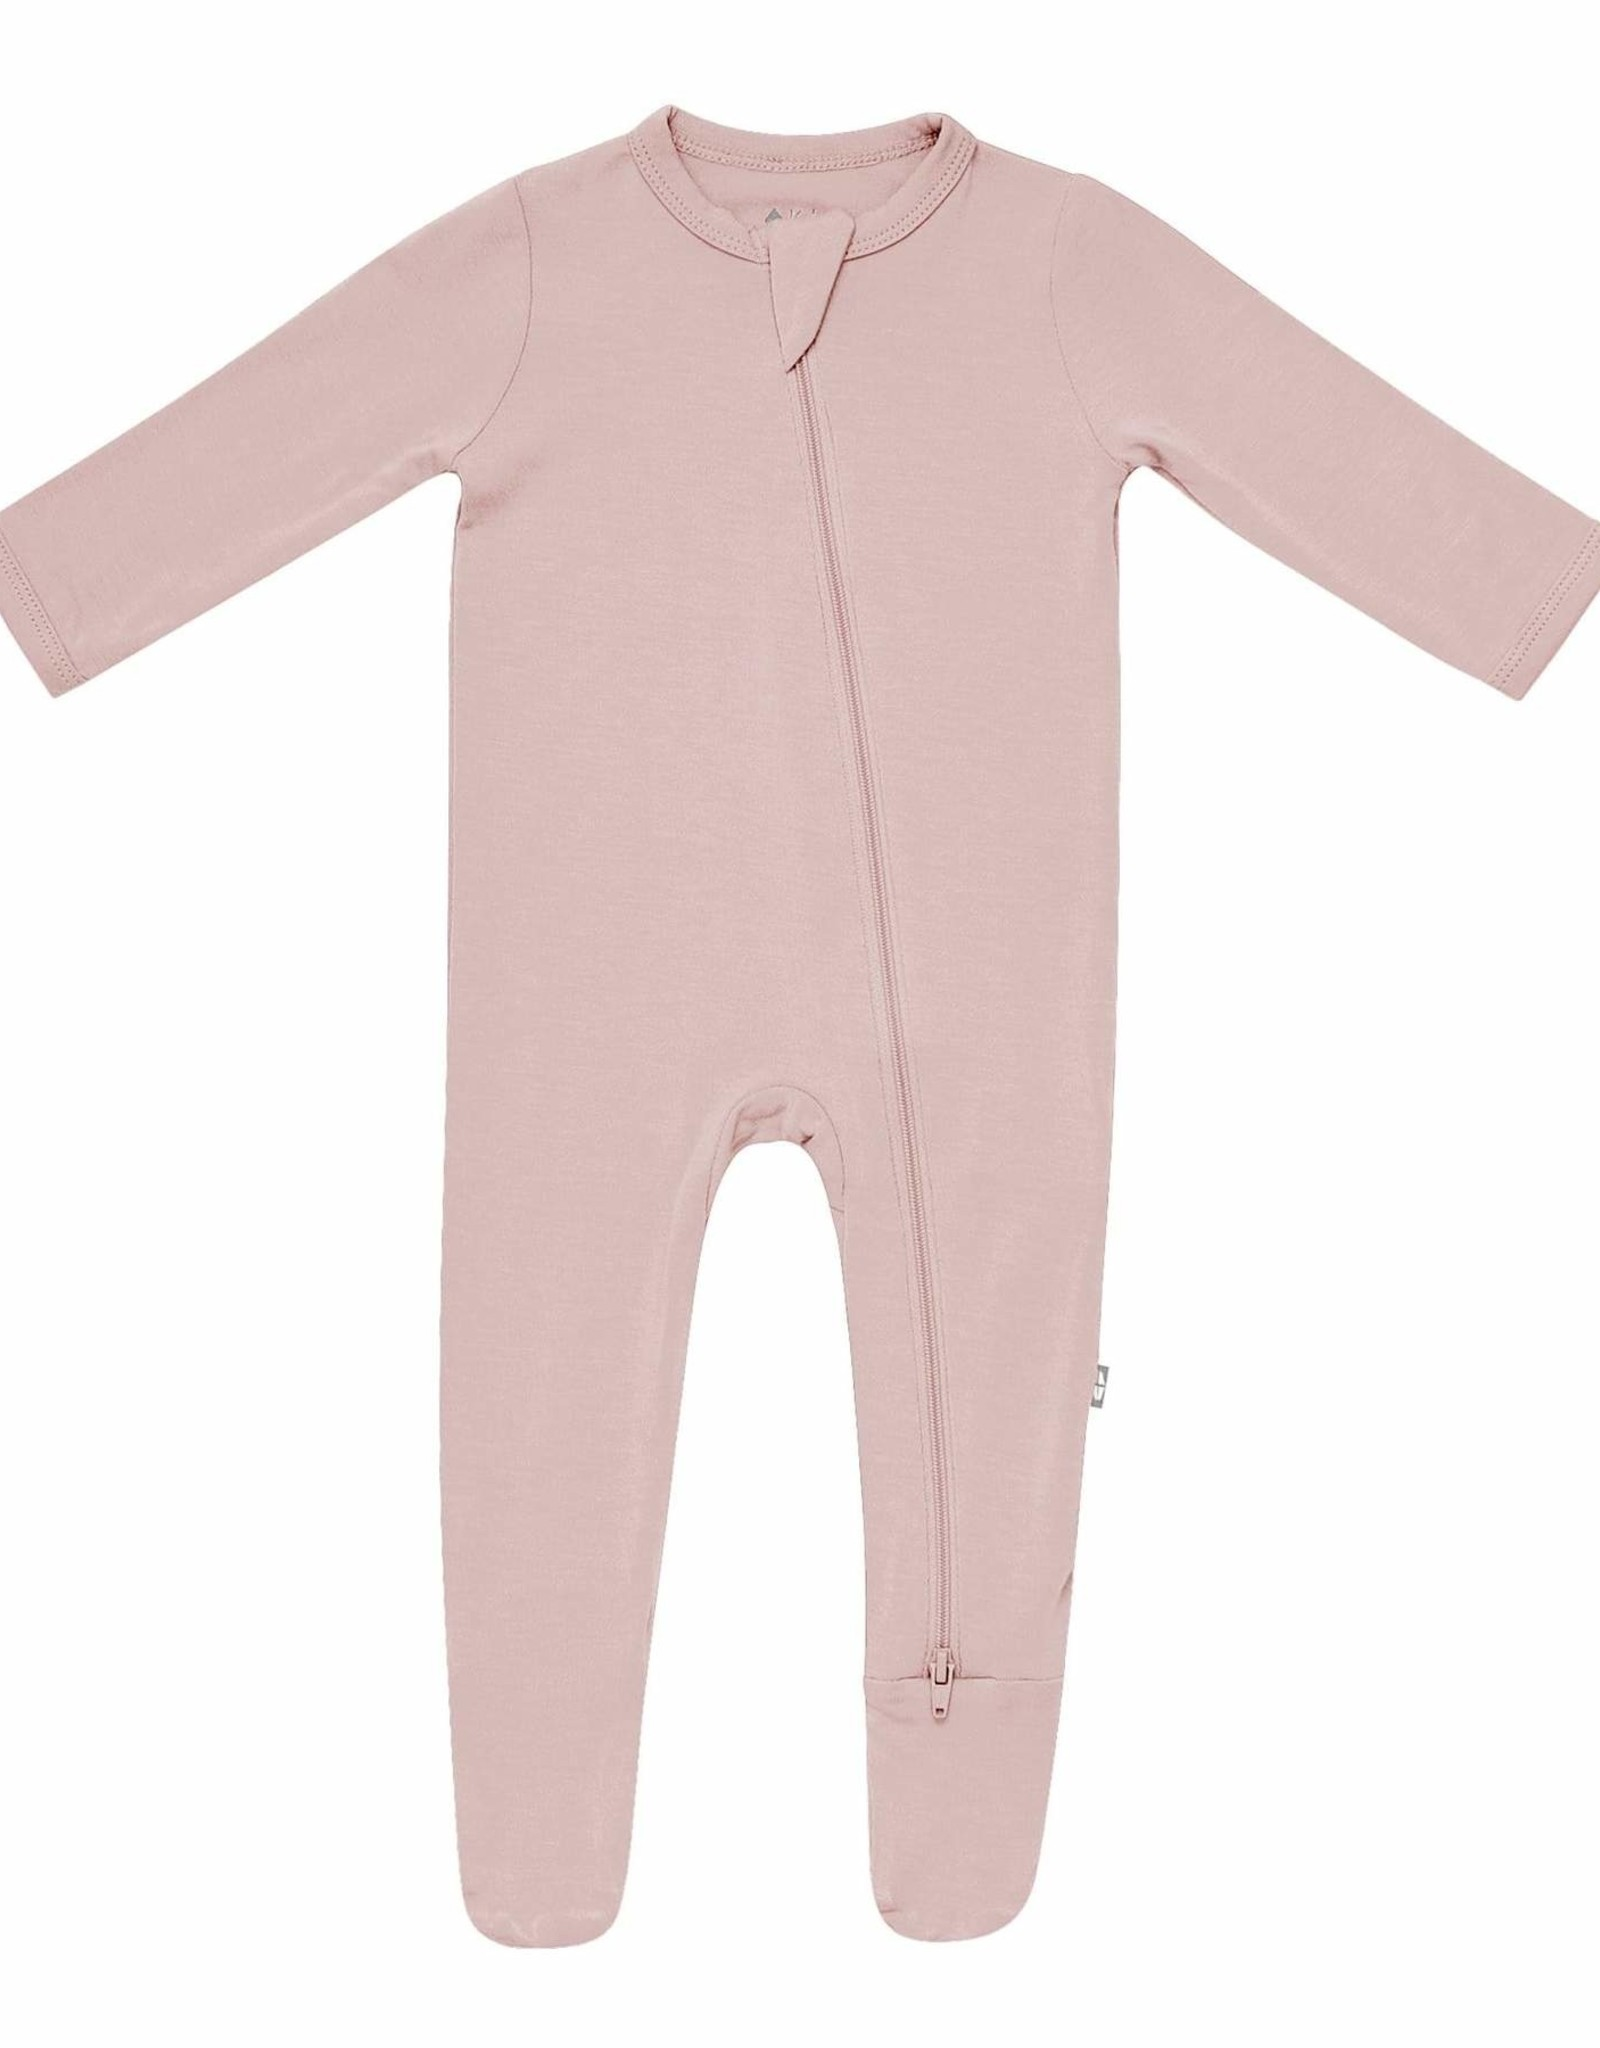 Kyte Baby zippered footie- sunset